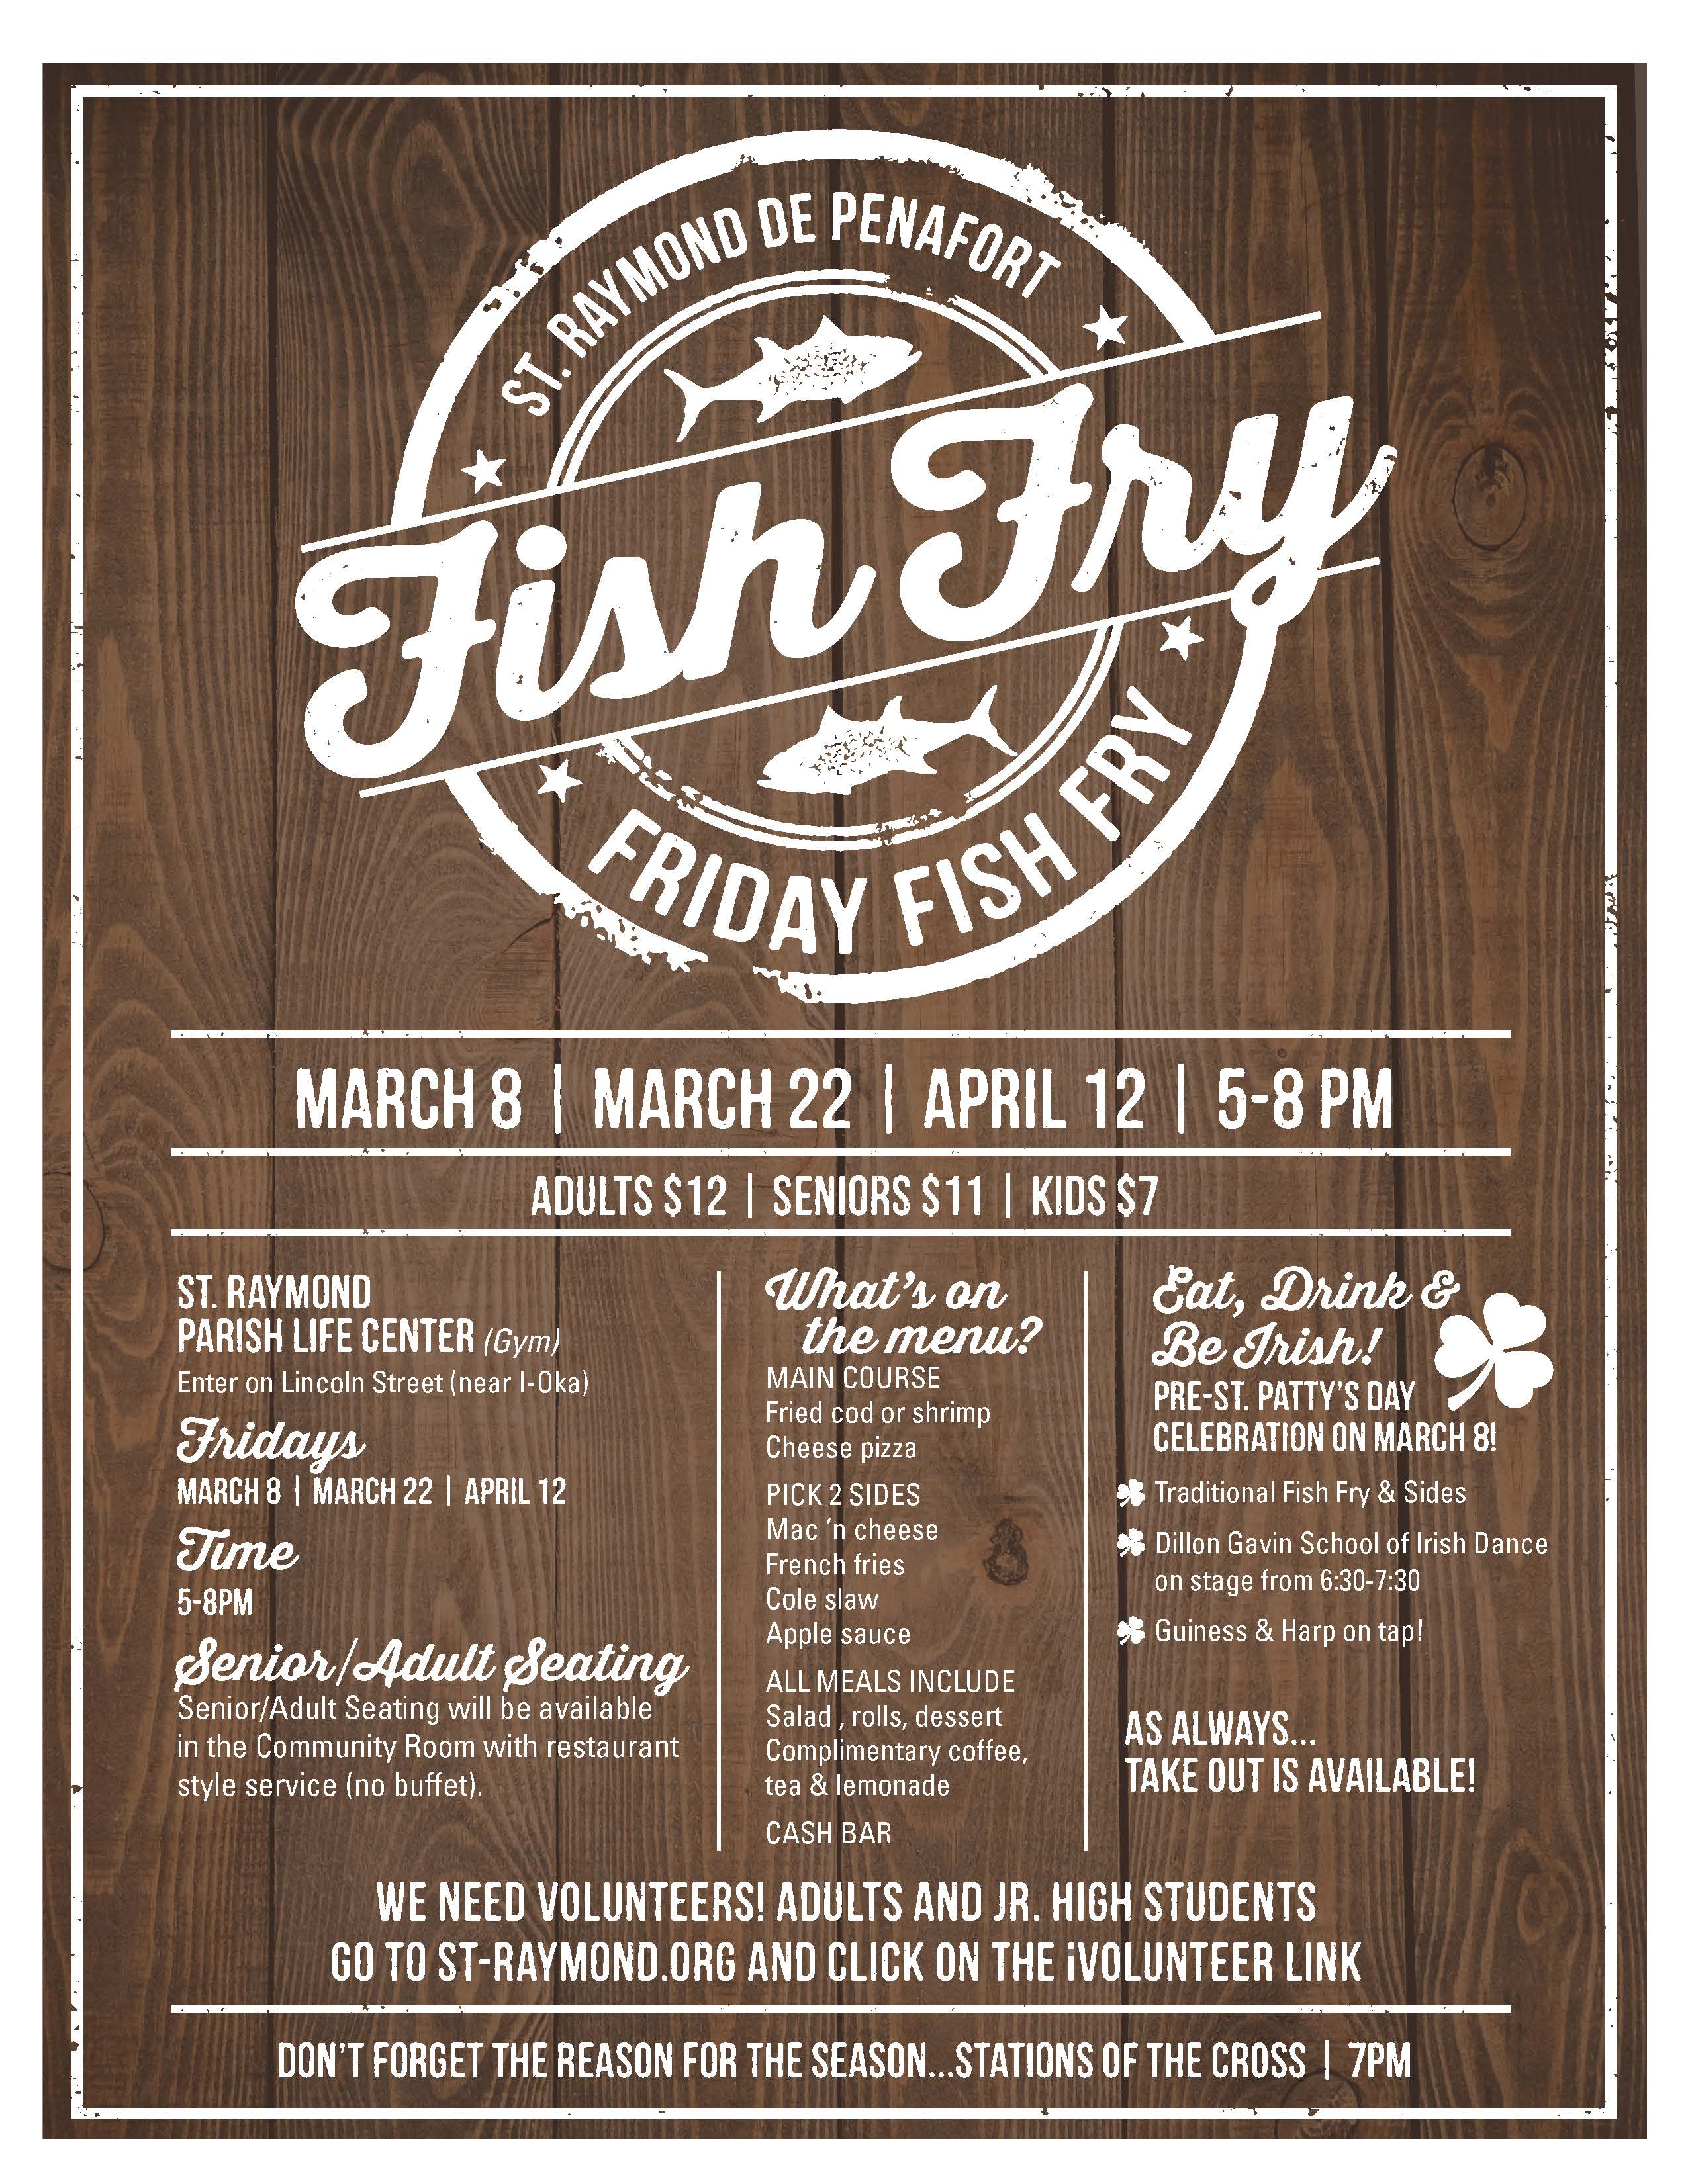 fbd02d8672d447 Our Final Fish Fry of the Lenten season is on Friday